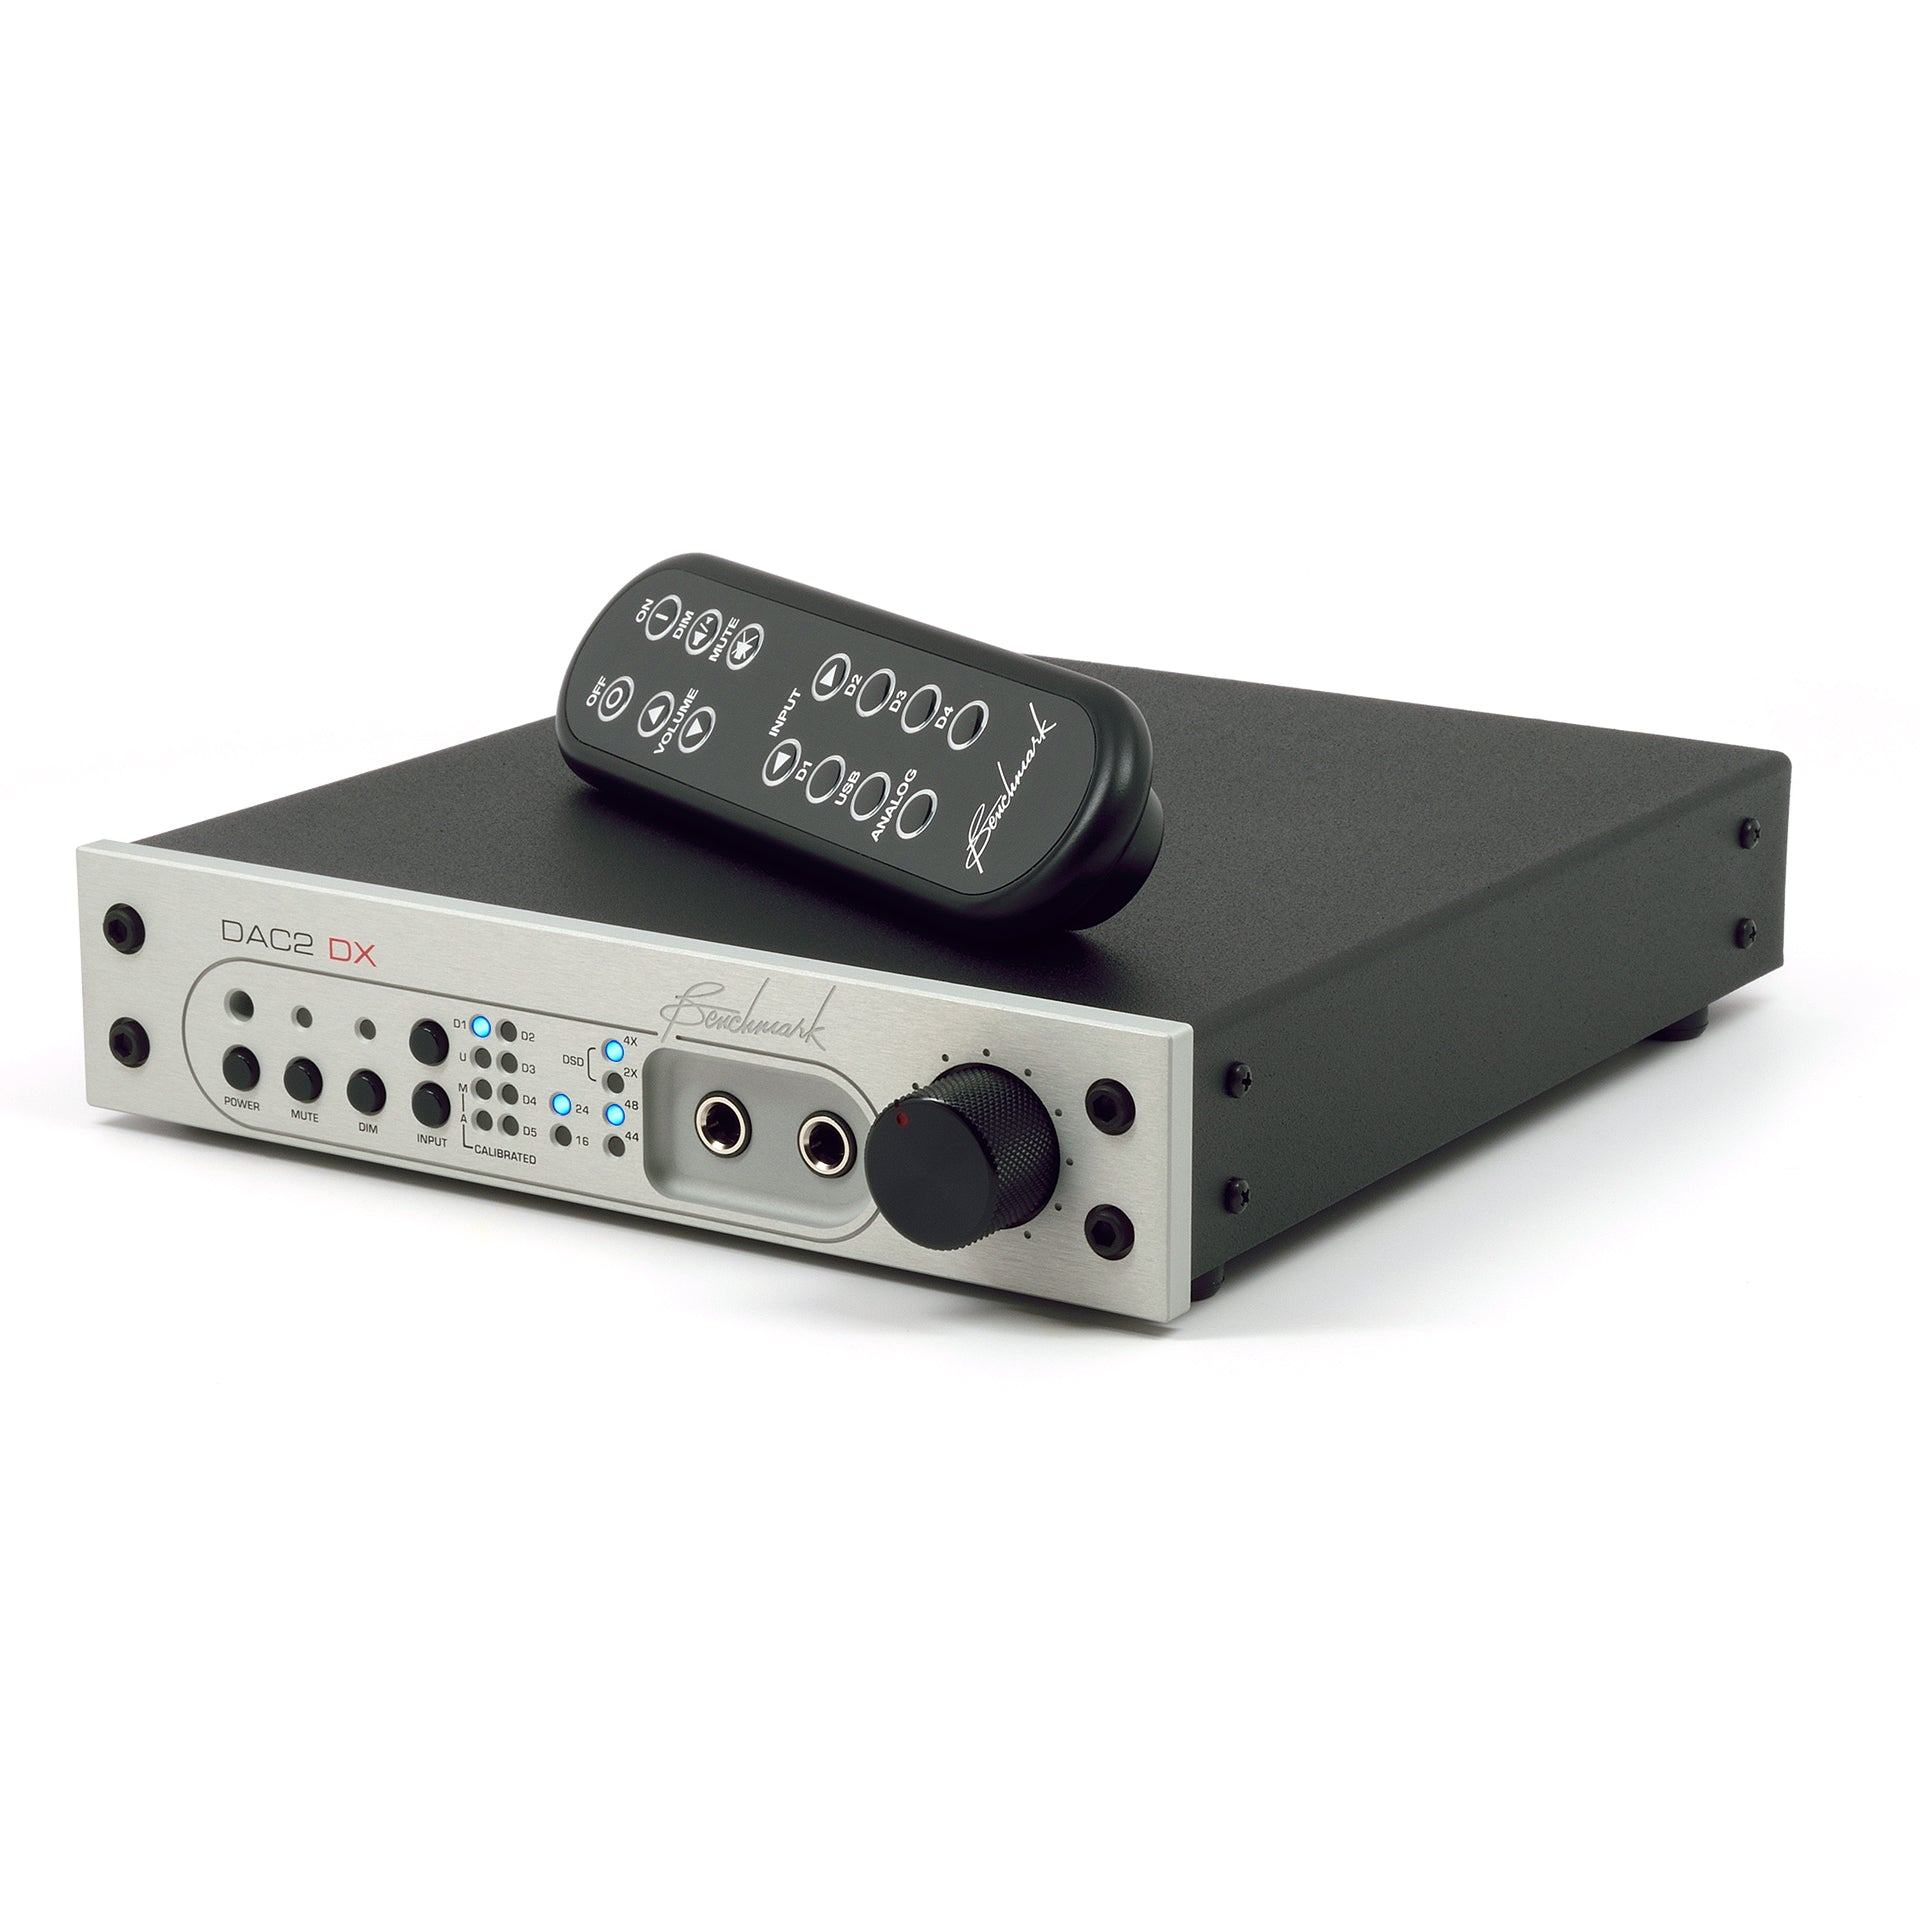 Benchmark DAC2 DX - Digital to Analog Audio Converter